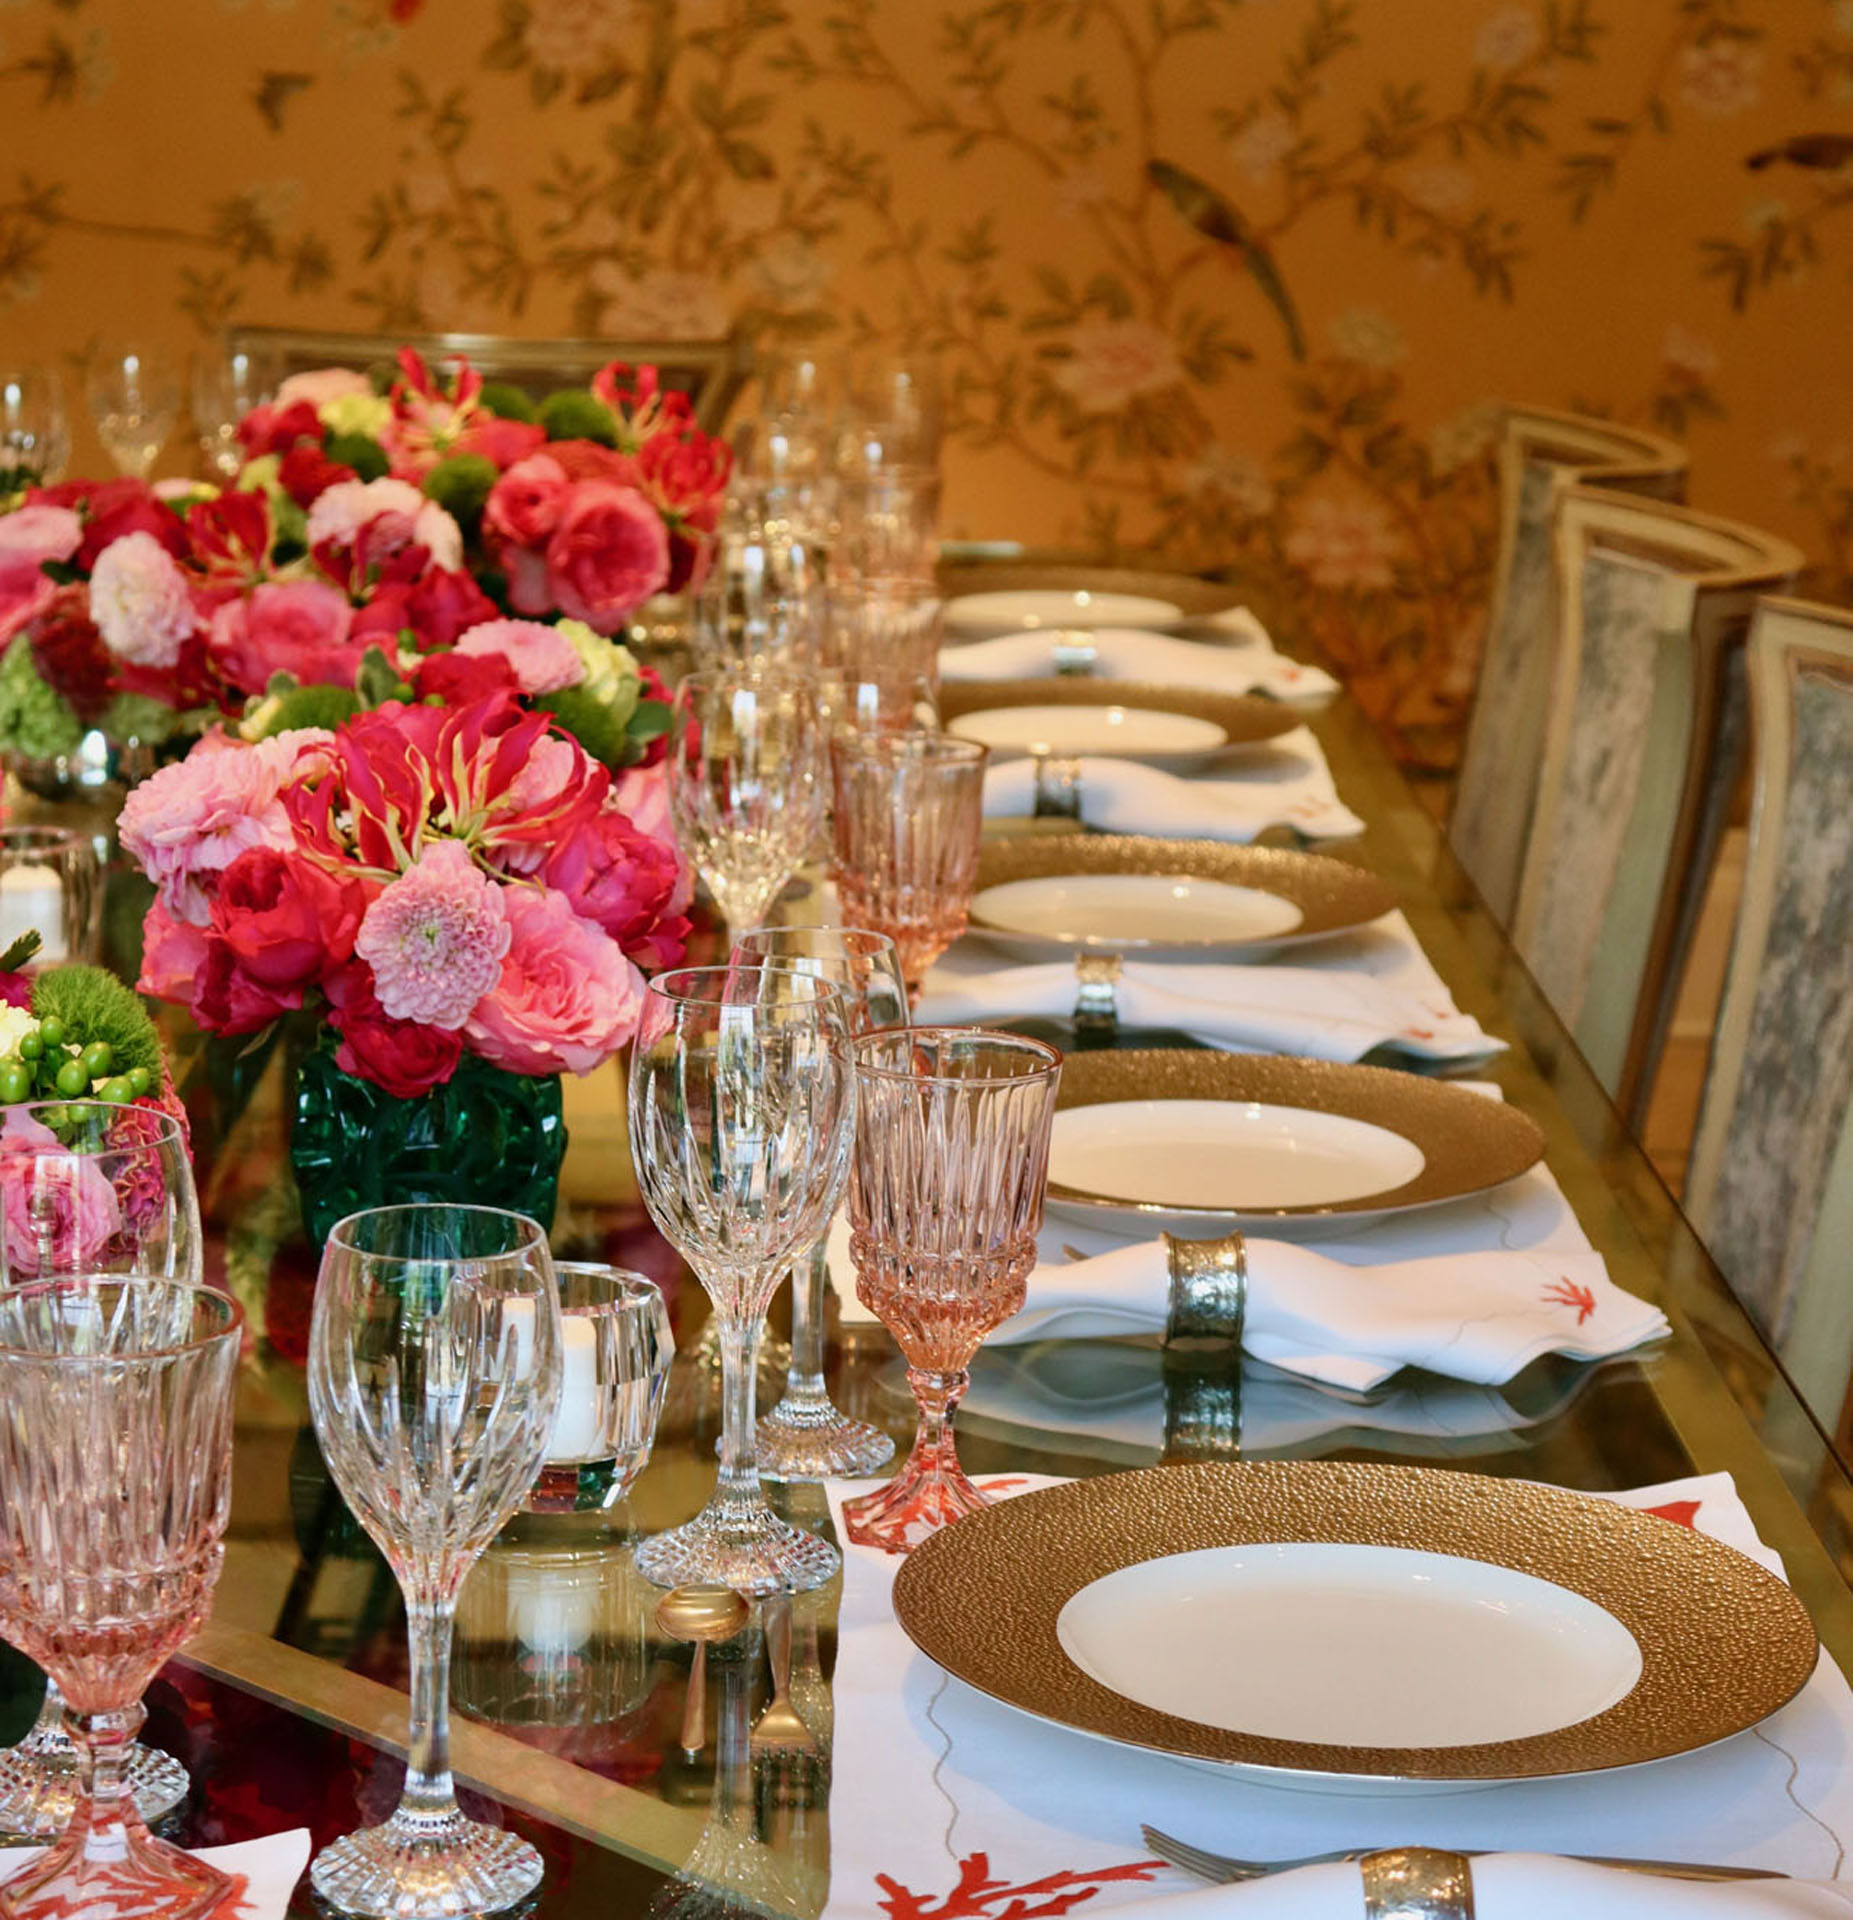 Kane & Co is a full service studio specializing in boutique events